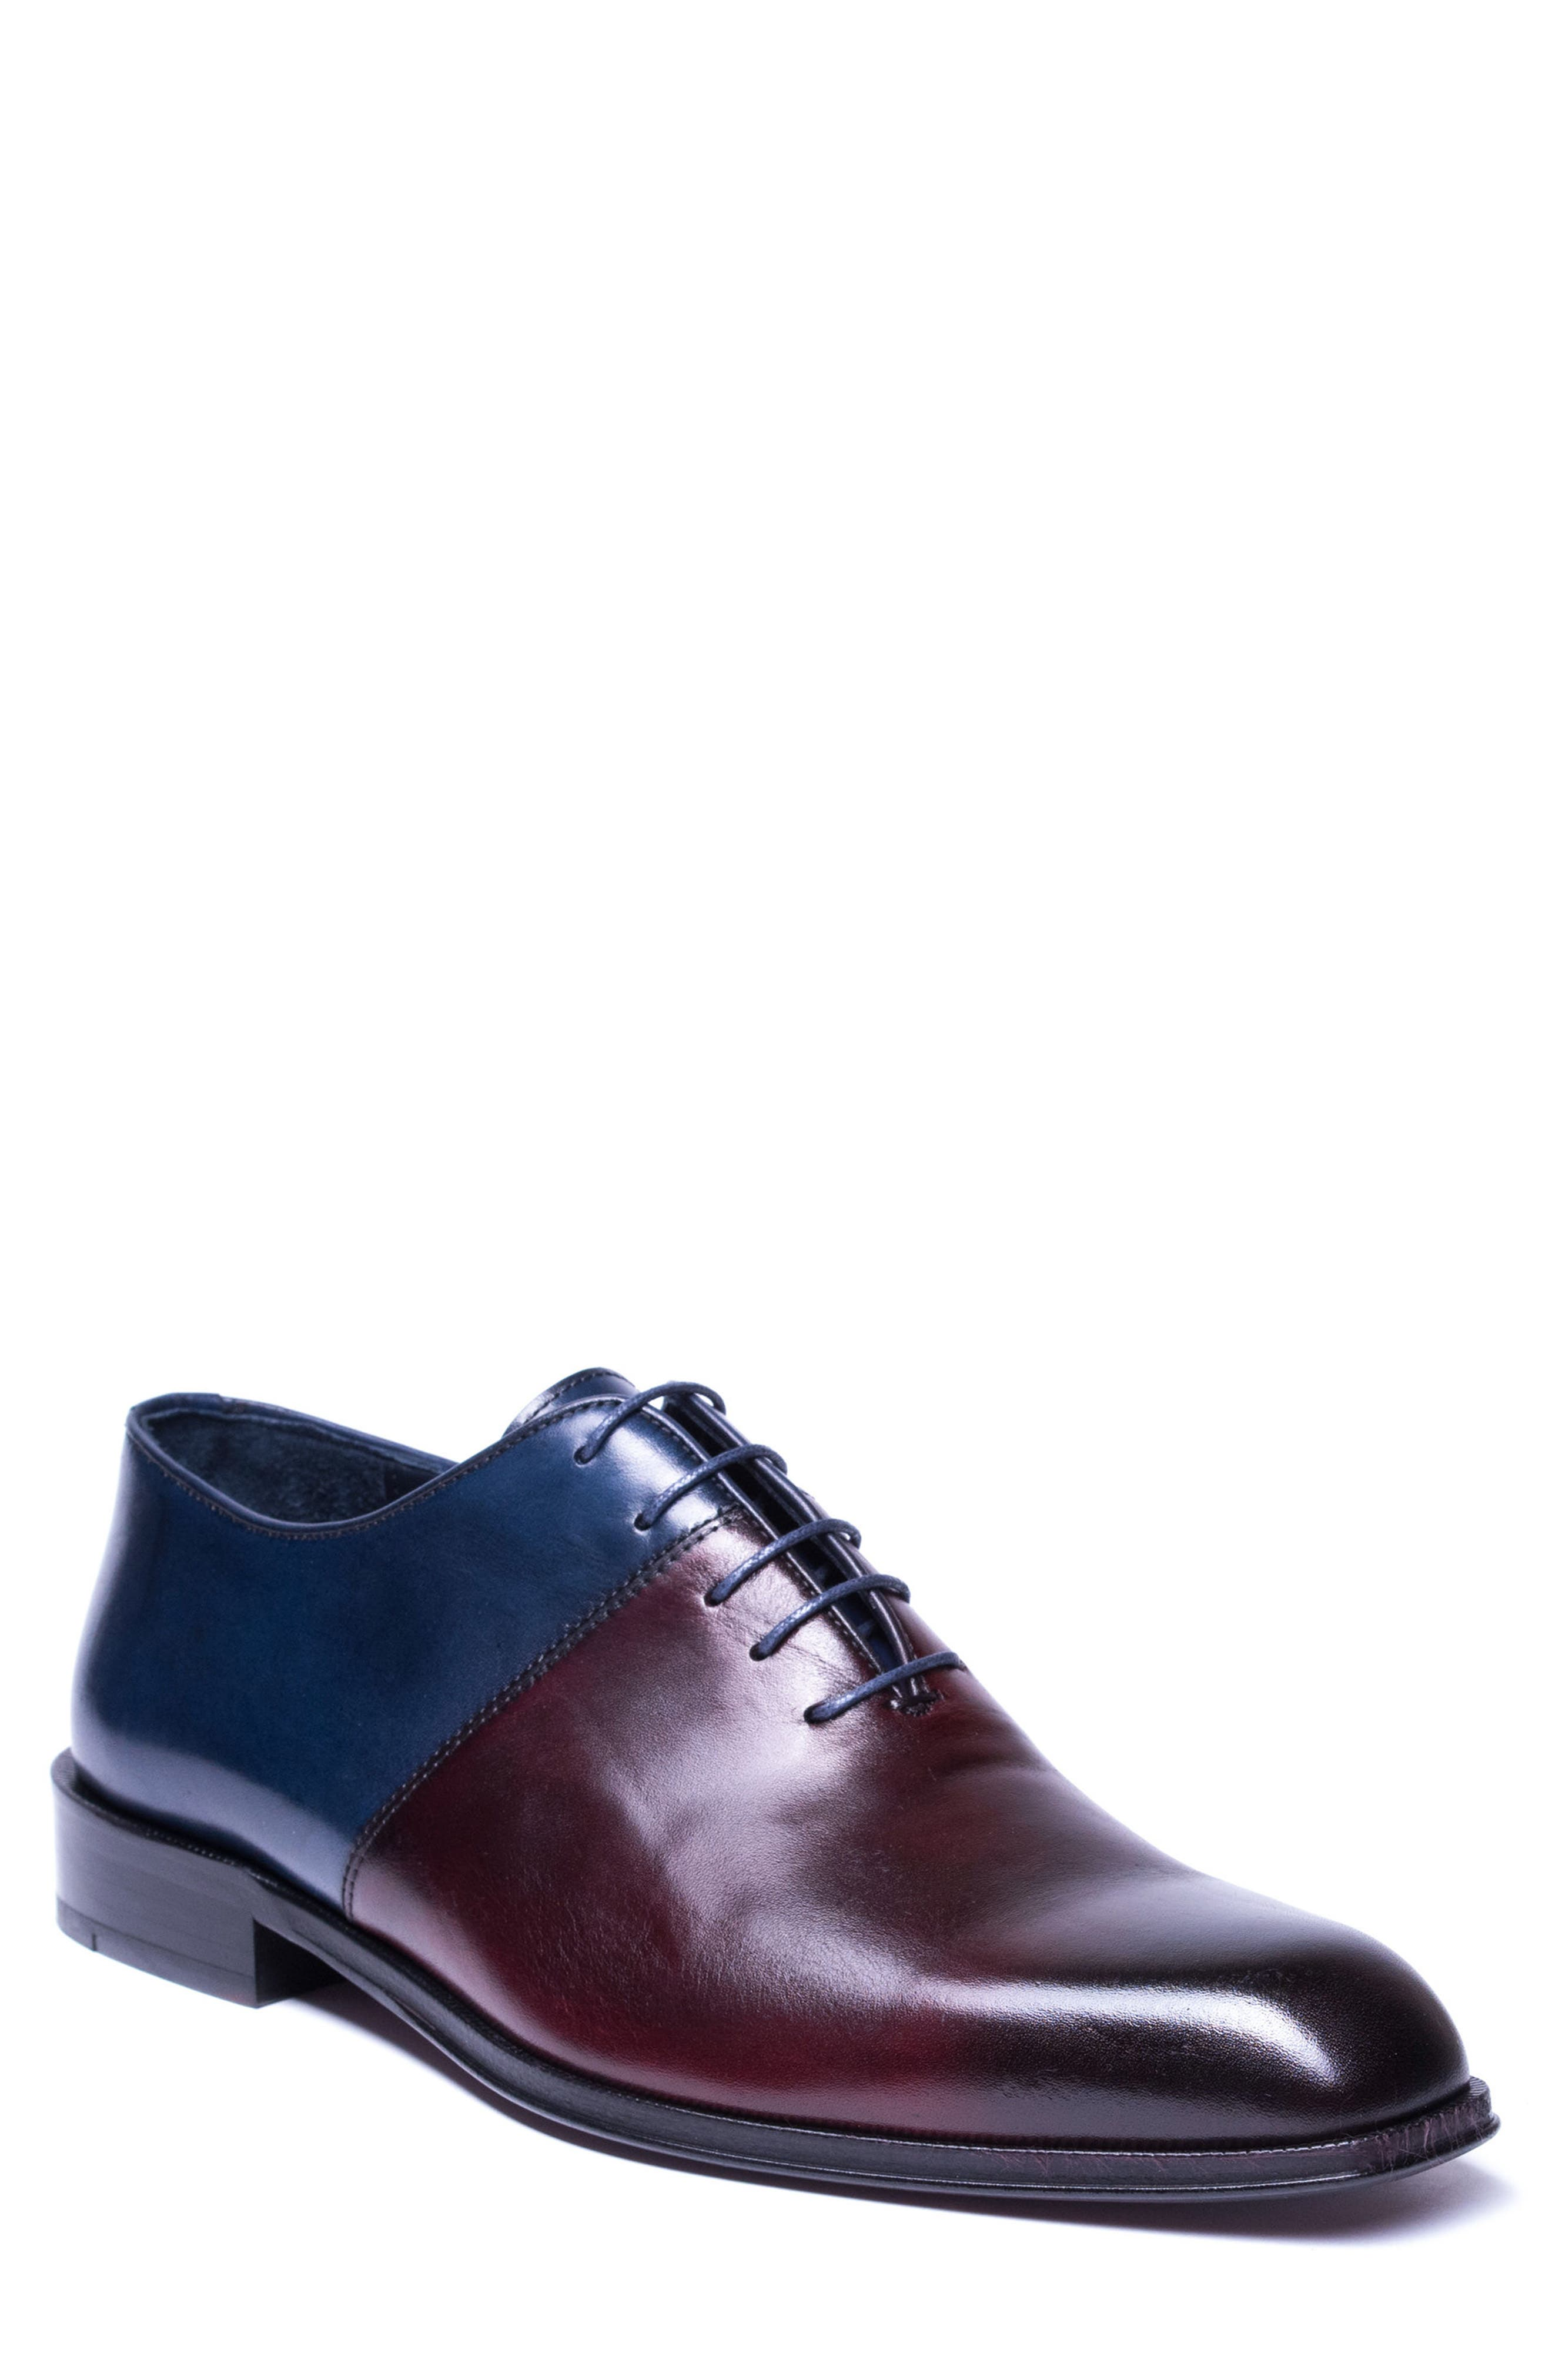 Wyatt Colorblocked Whole Cut Shoe,                             Main thumbnail 1, color,                             BURGUNDY LEATHER